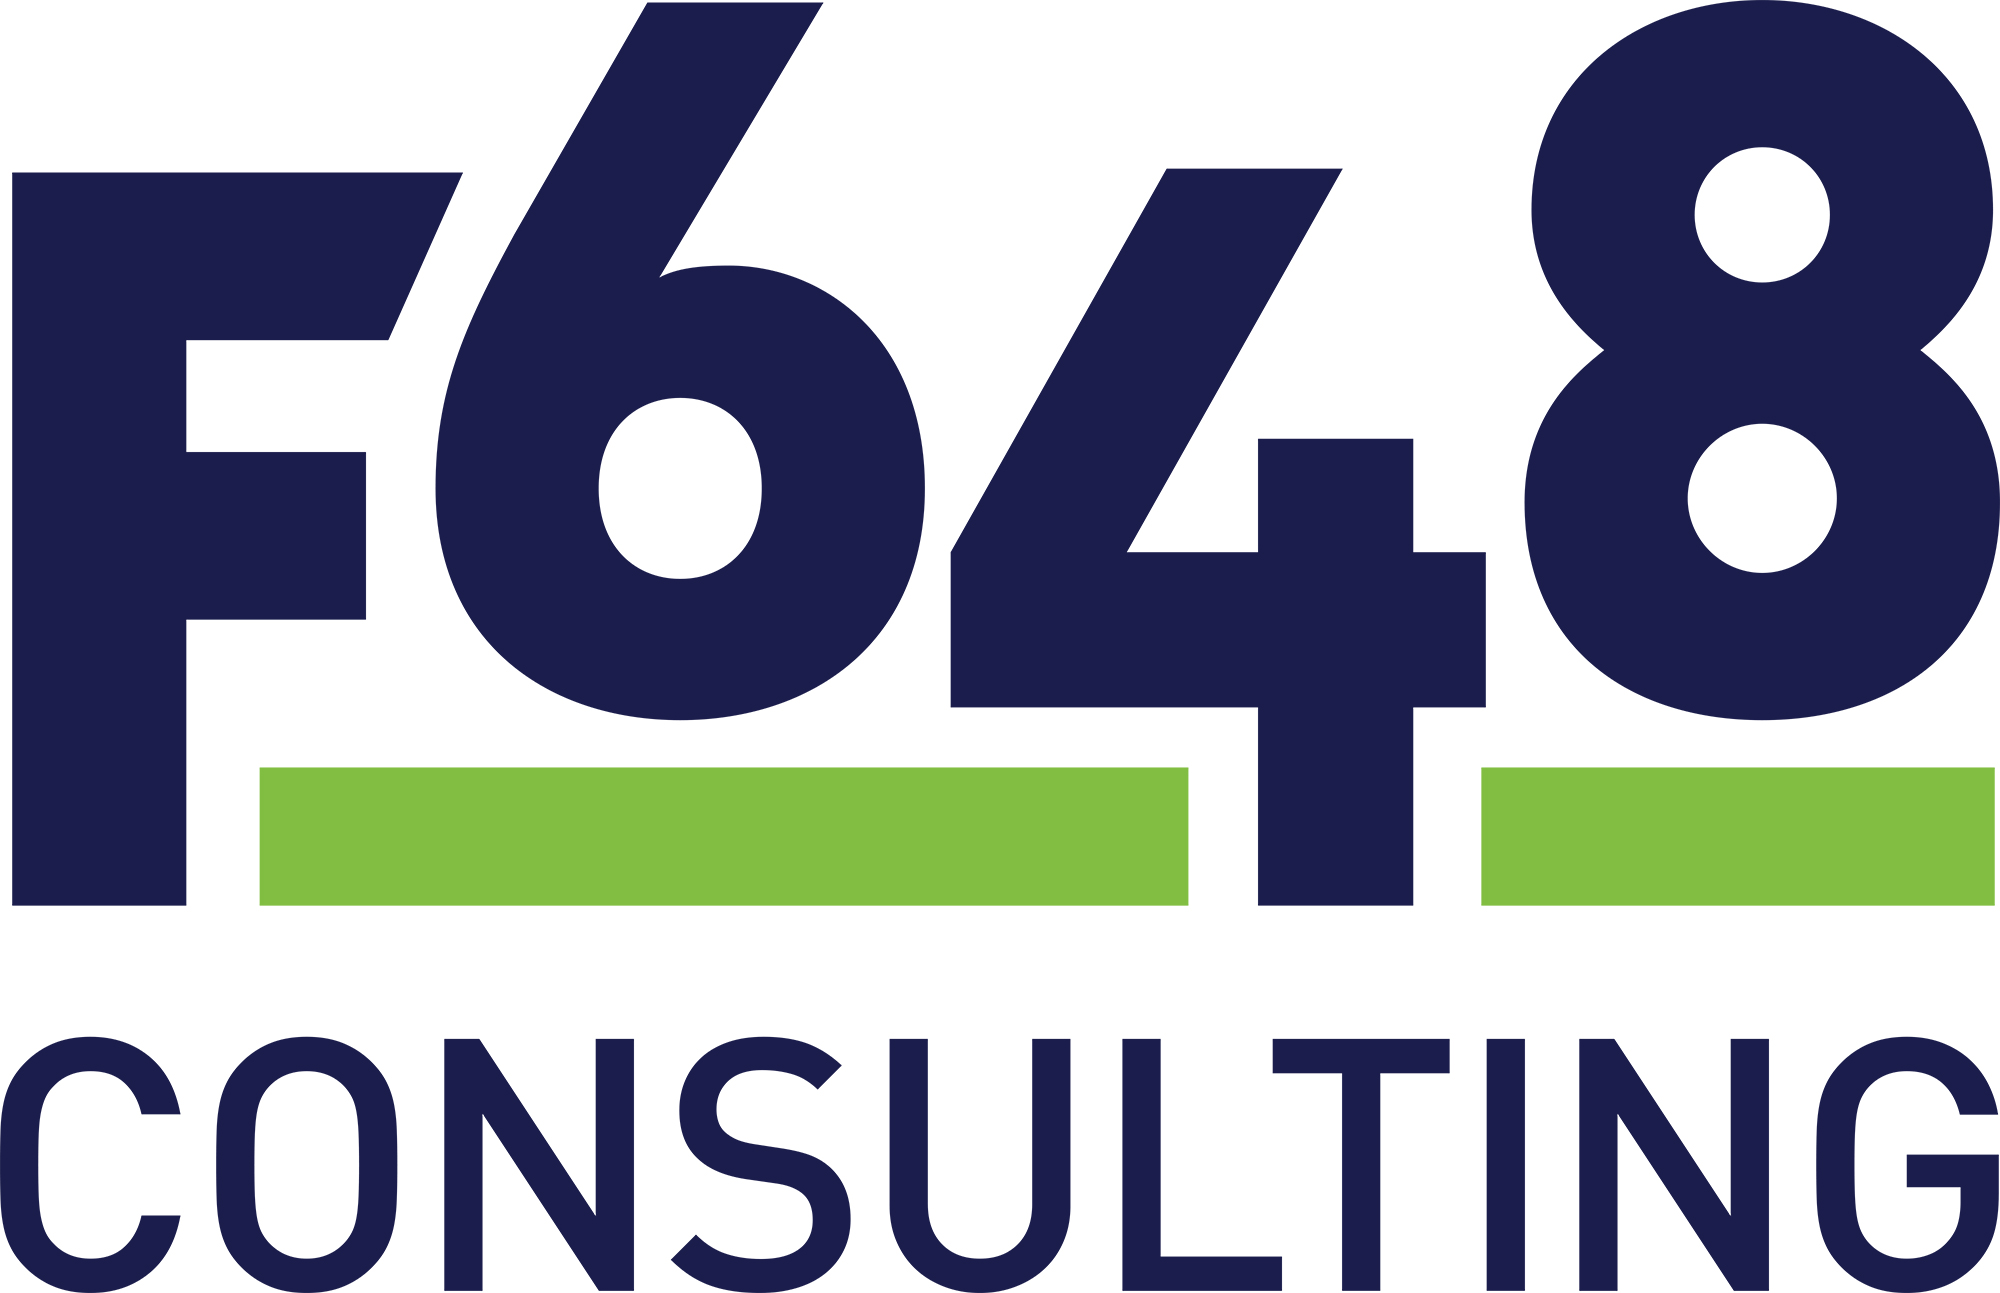 F648 Consulting